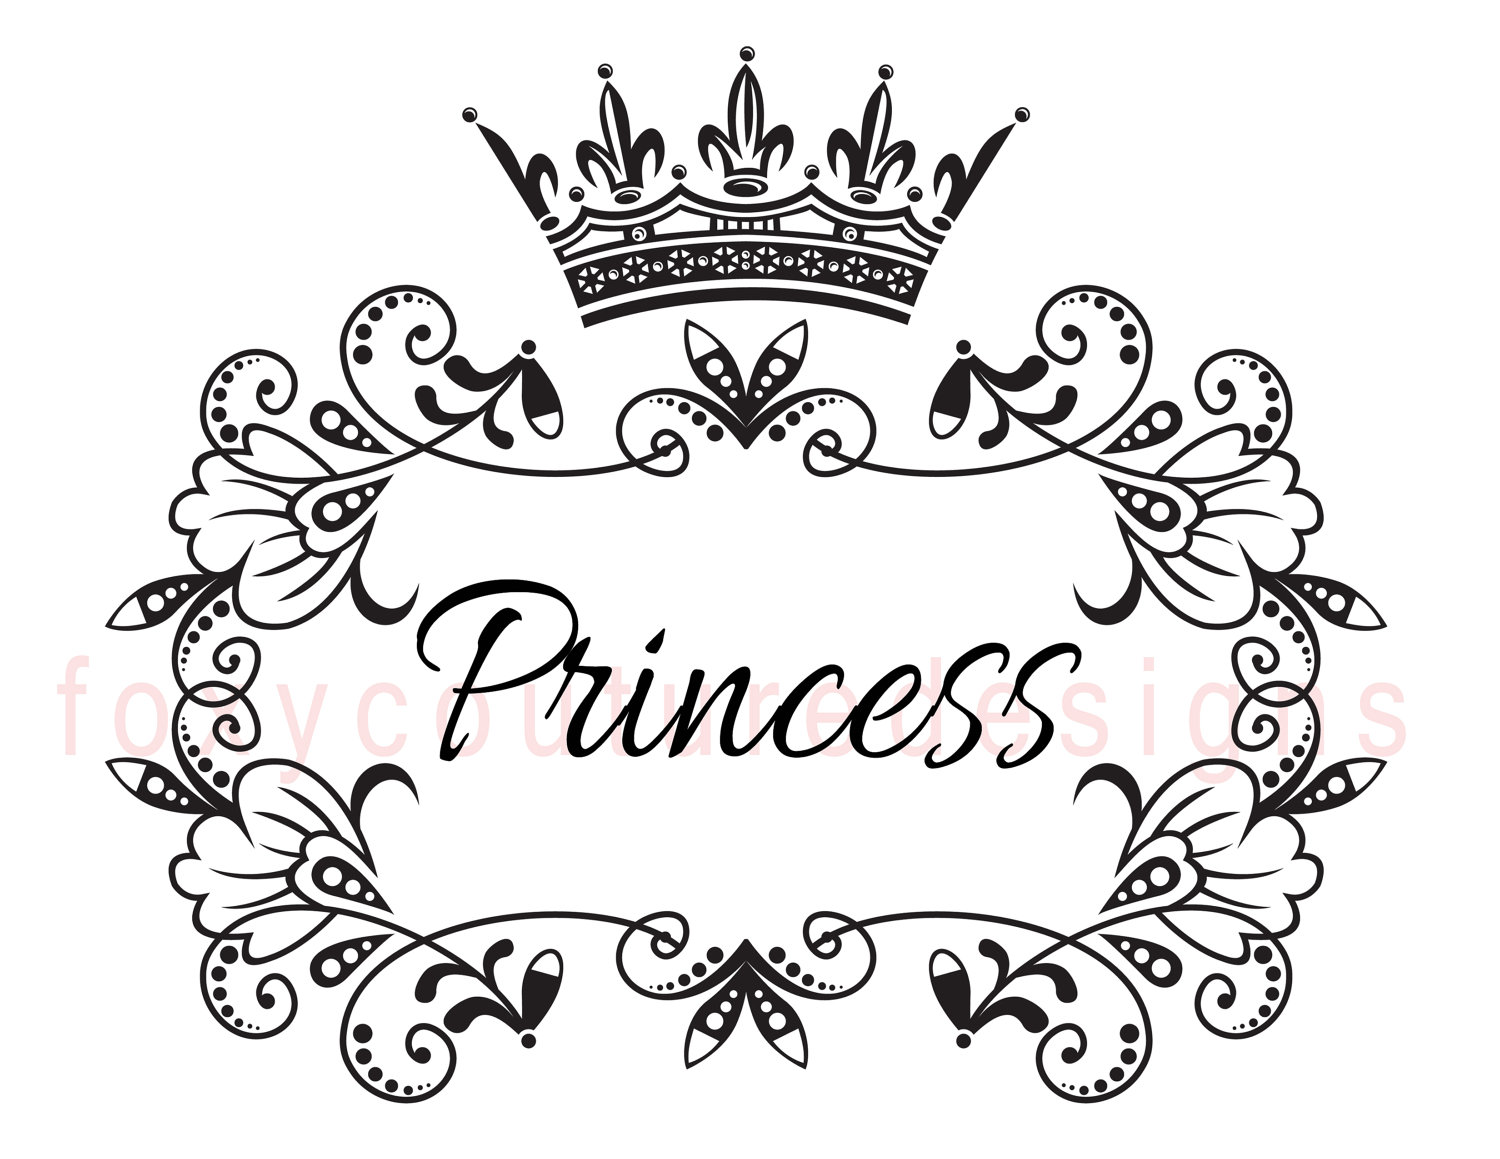 Elegance  clipart princess crown With Princess Towels Pillows Word